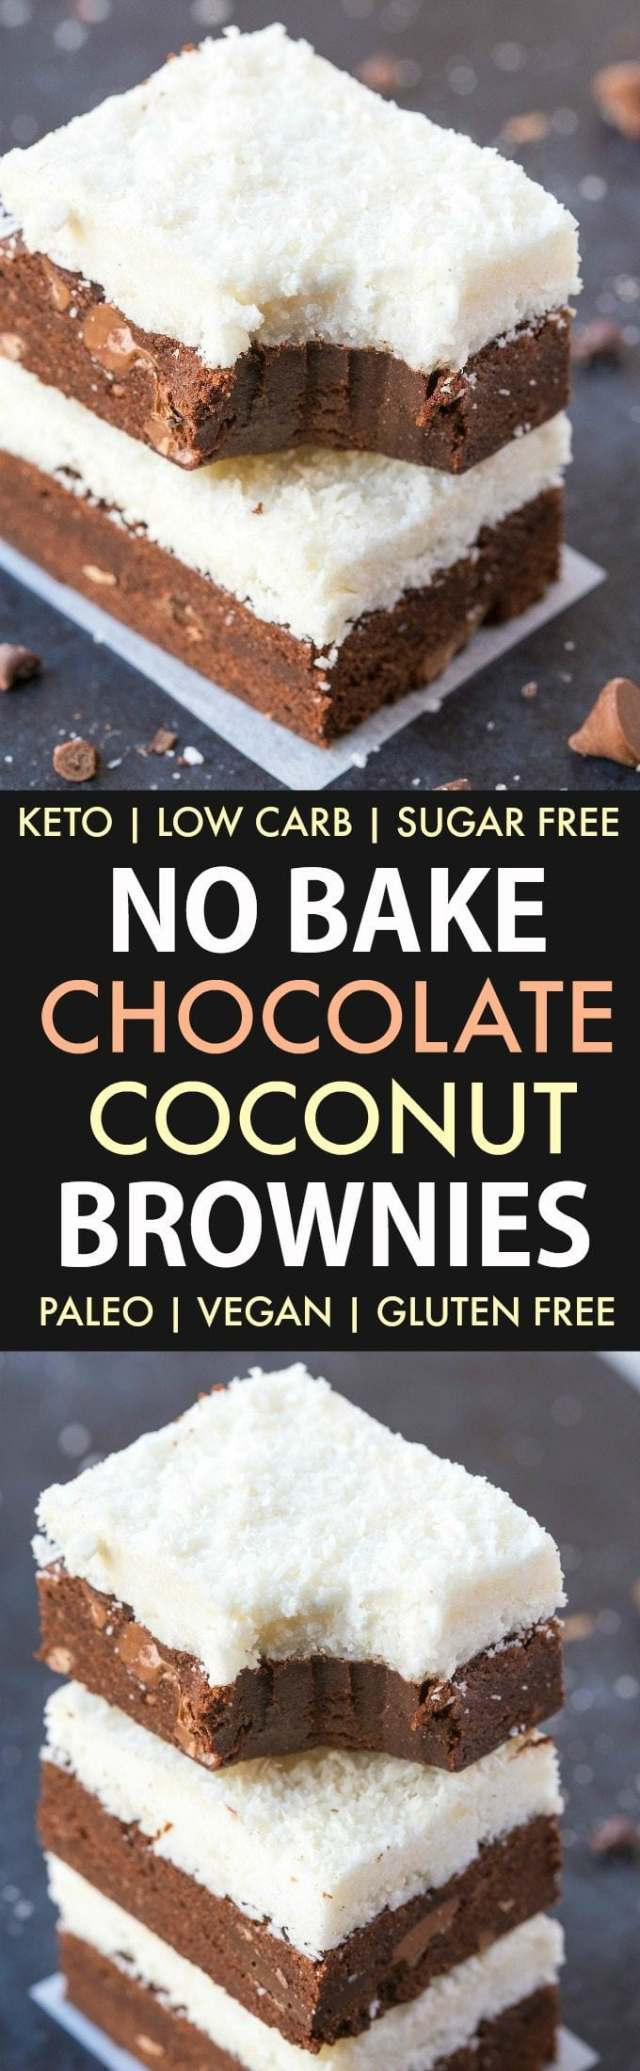 No Bake Chocolate Coconut Brownies (Paleo, Vegan, Keto, Sugar Free, Gluten Free)-An easy recipe for chocolate coconut no bake brownies and packed with protein! Easy, delicious low carb cookies which take less than 5 minutes to whip up- The perfect snack or dessert. #keto #ketodessert #nobake #brownies   Recipe on thebigmansworld.com